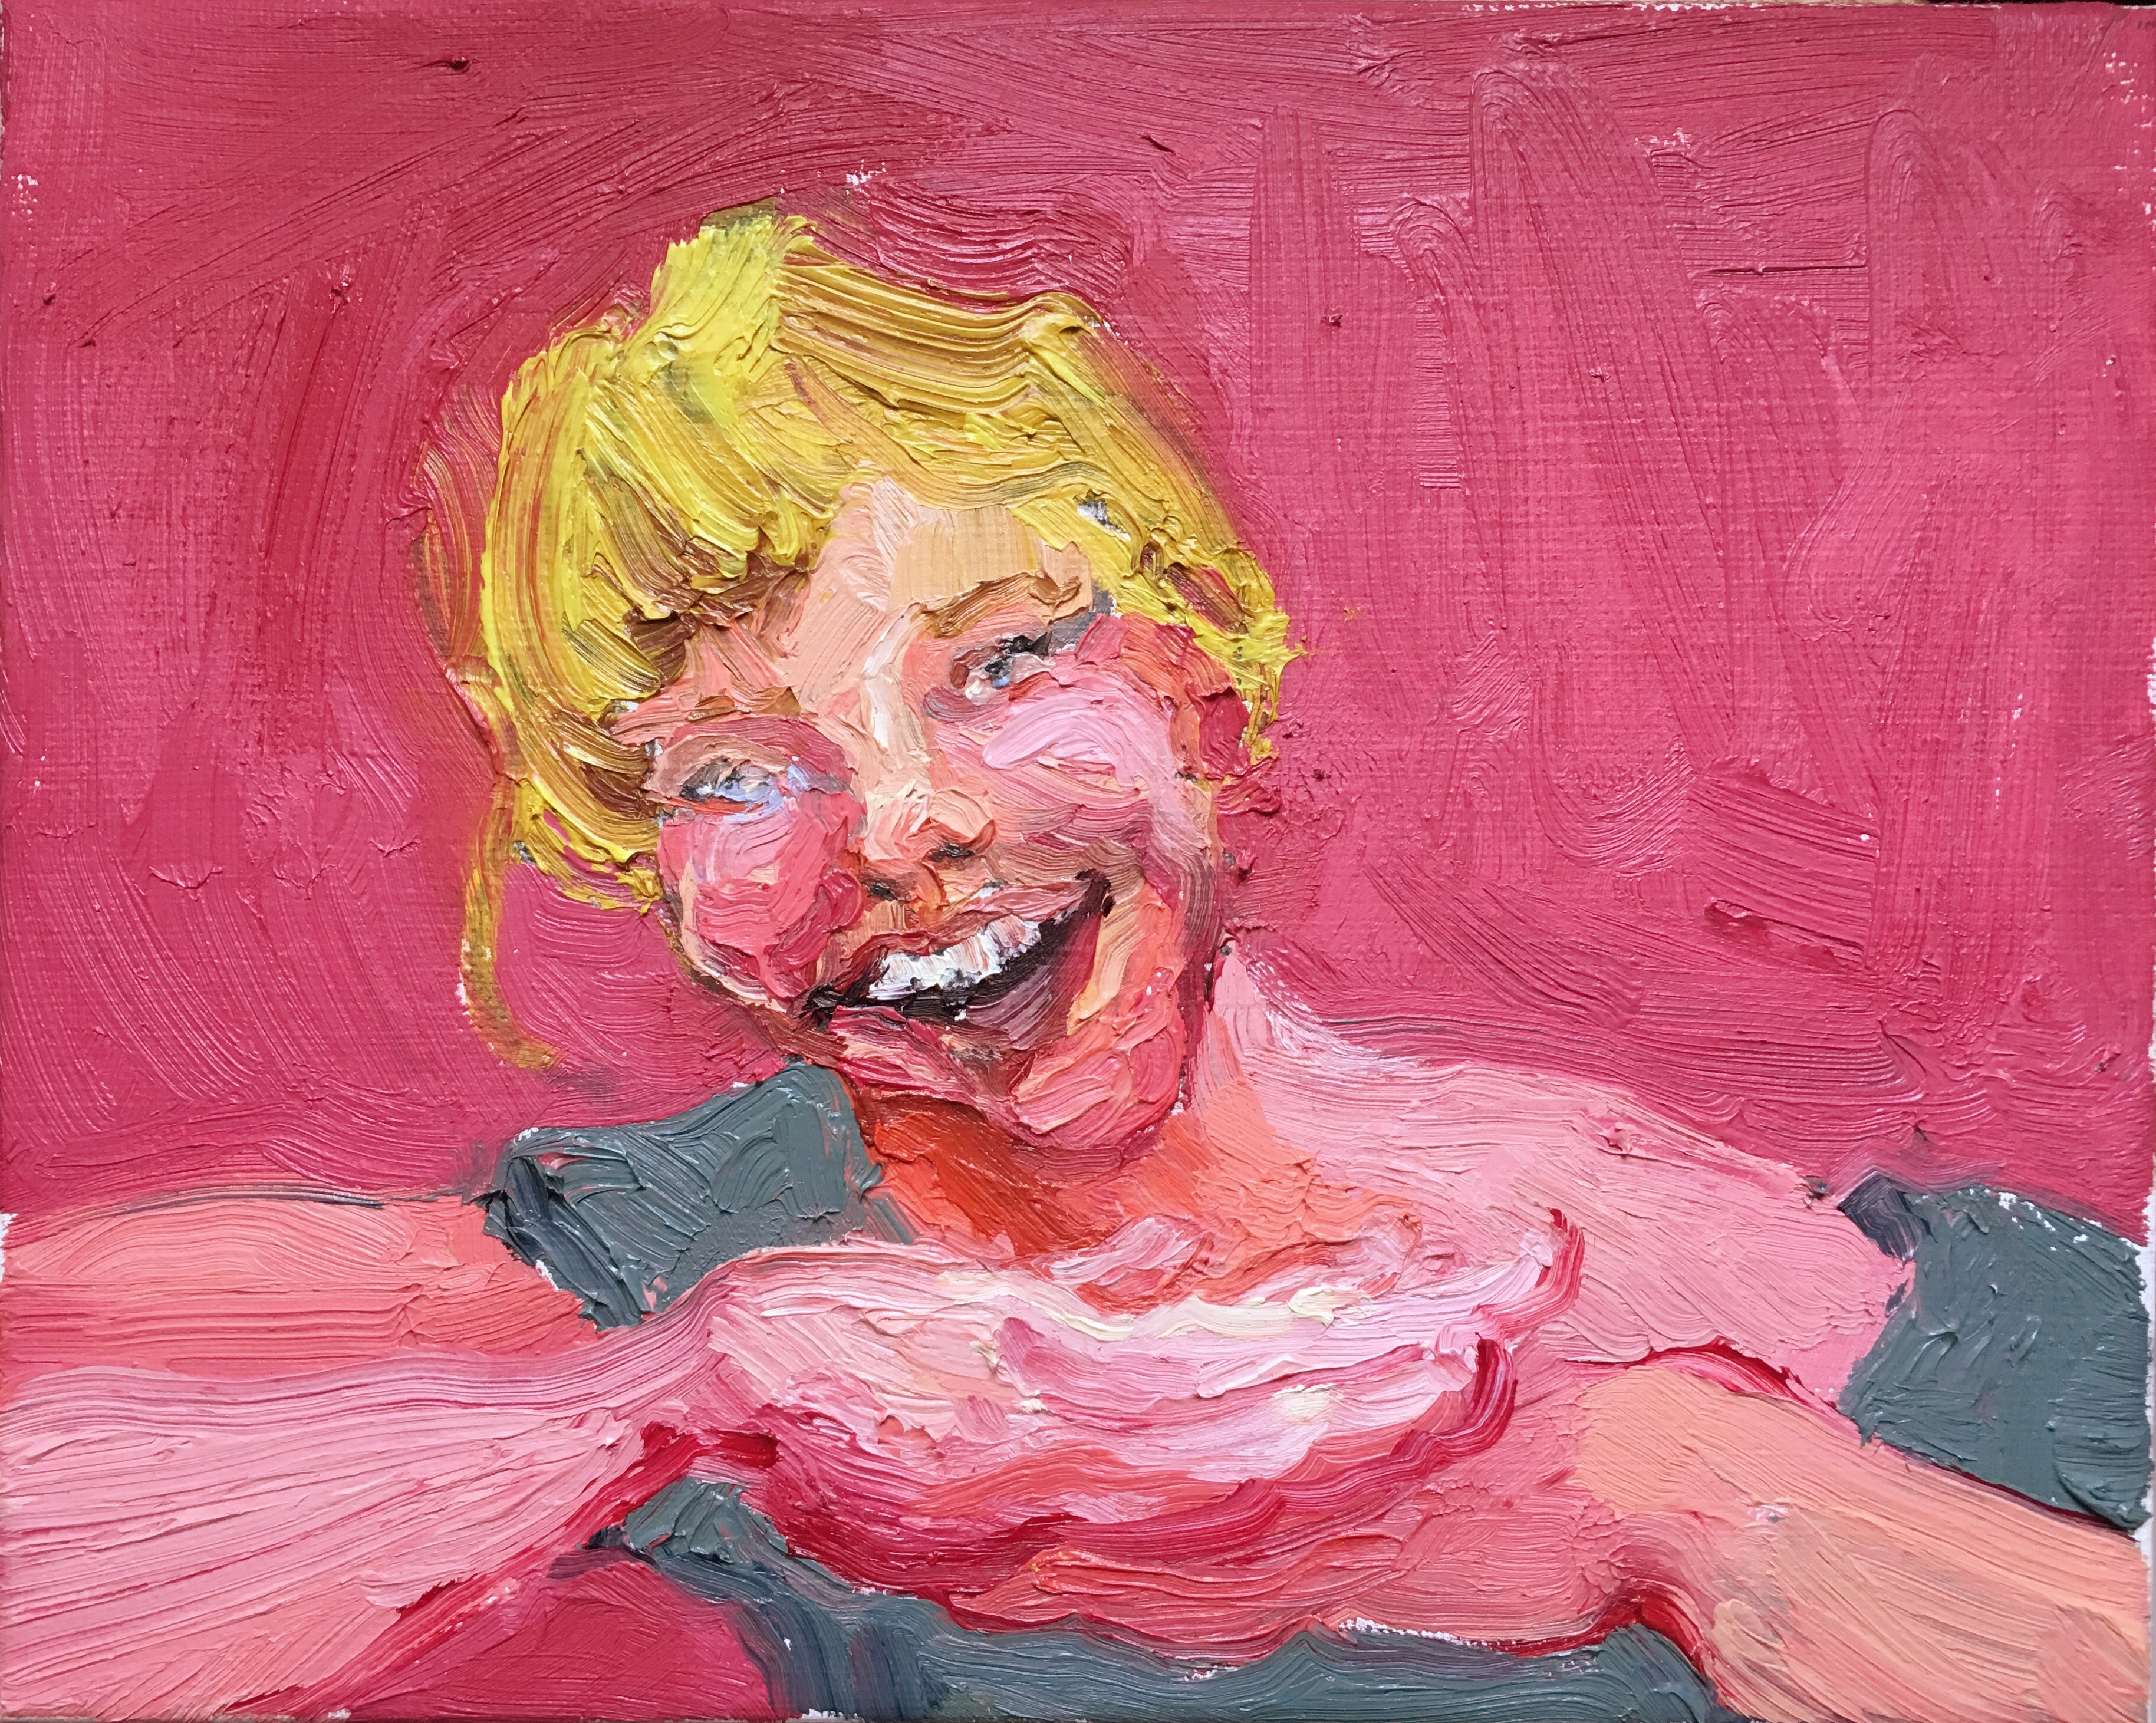 A vibrant pink and orange oil painting portrait of a blonde girl smiling aggressively, posing with hands under chin.